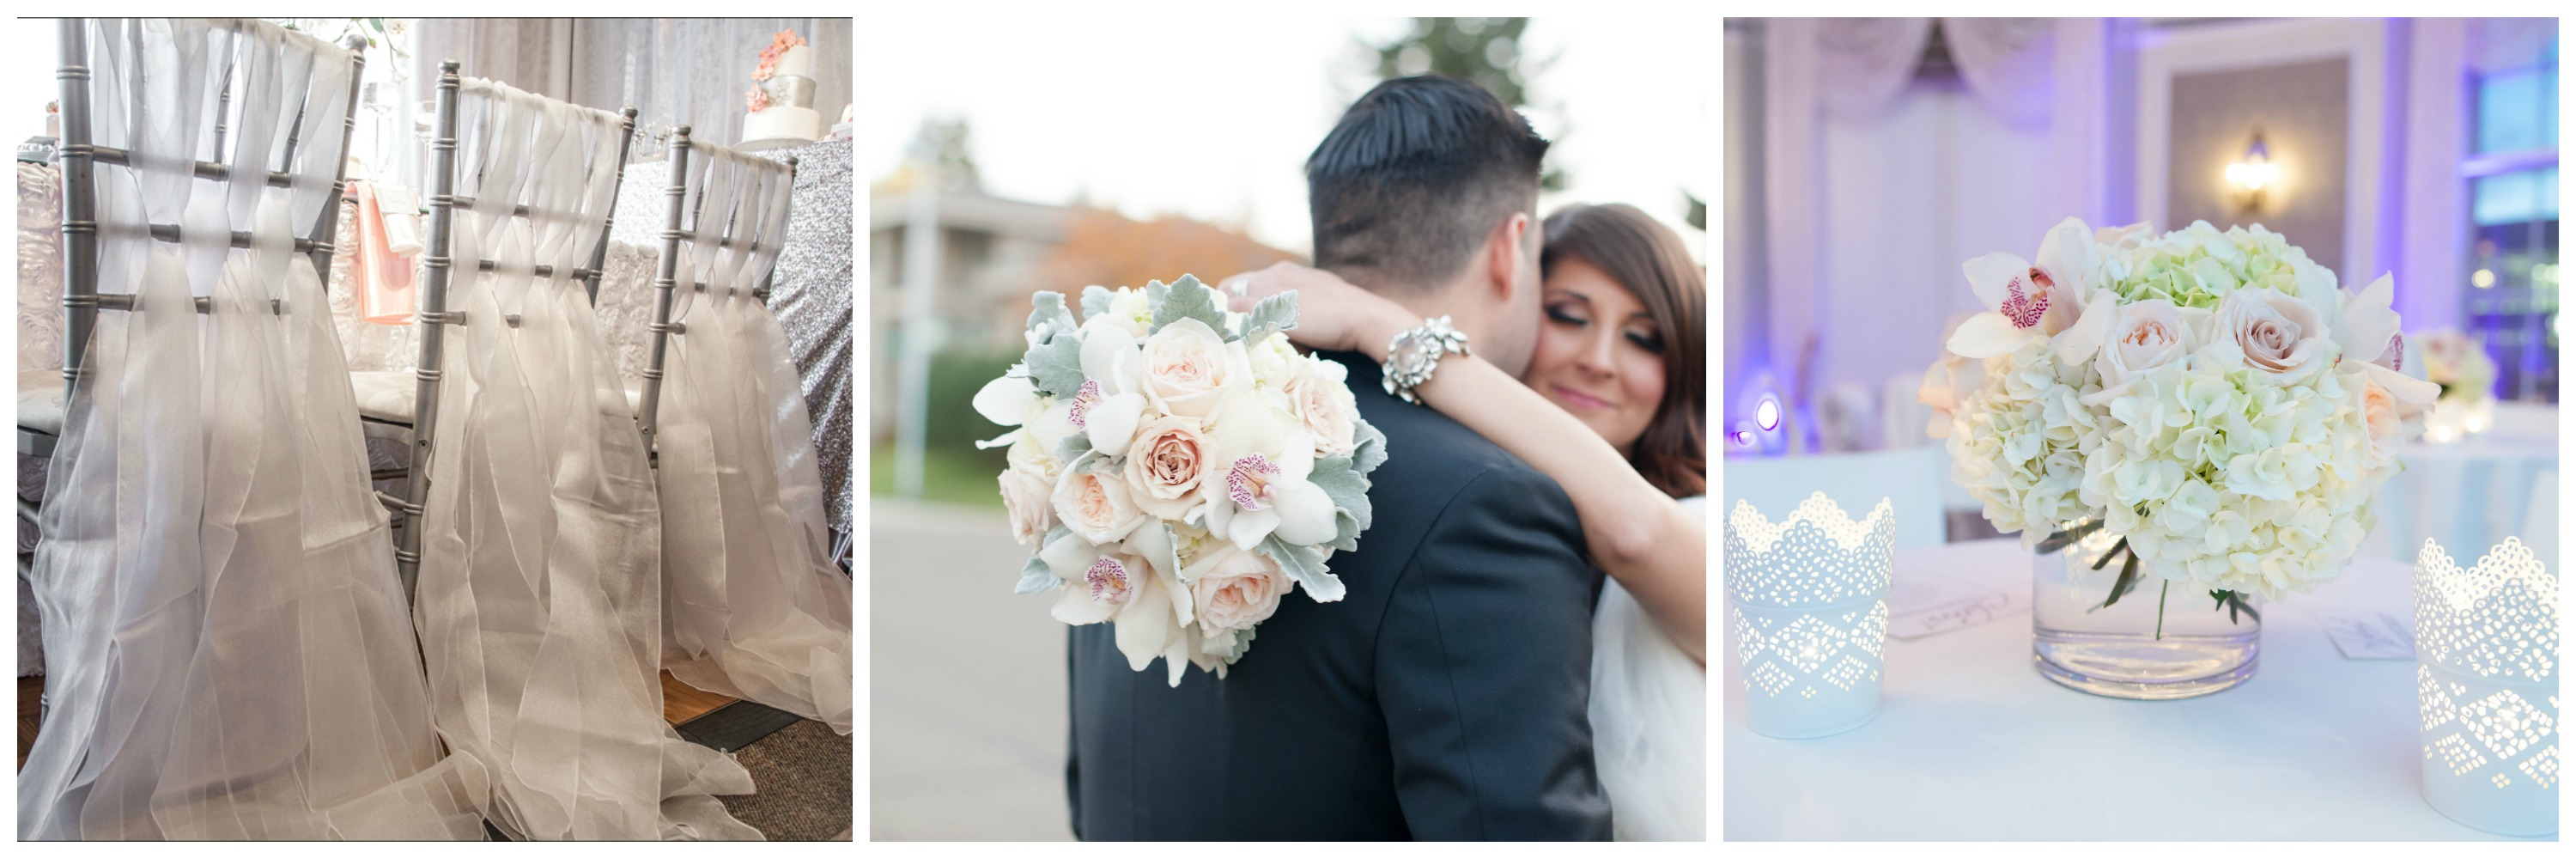 Edmonton Wedding Planner - Creating customized wedding design and day of wedding coordination in edmonton #edmonton #wedding #planner